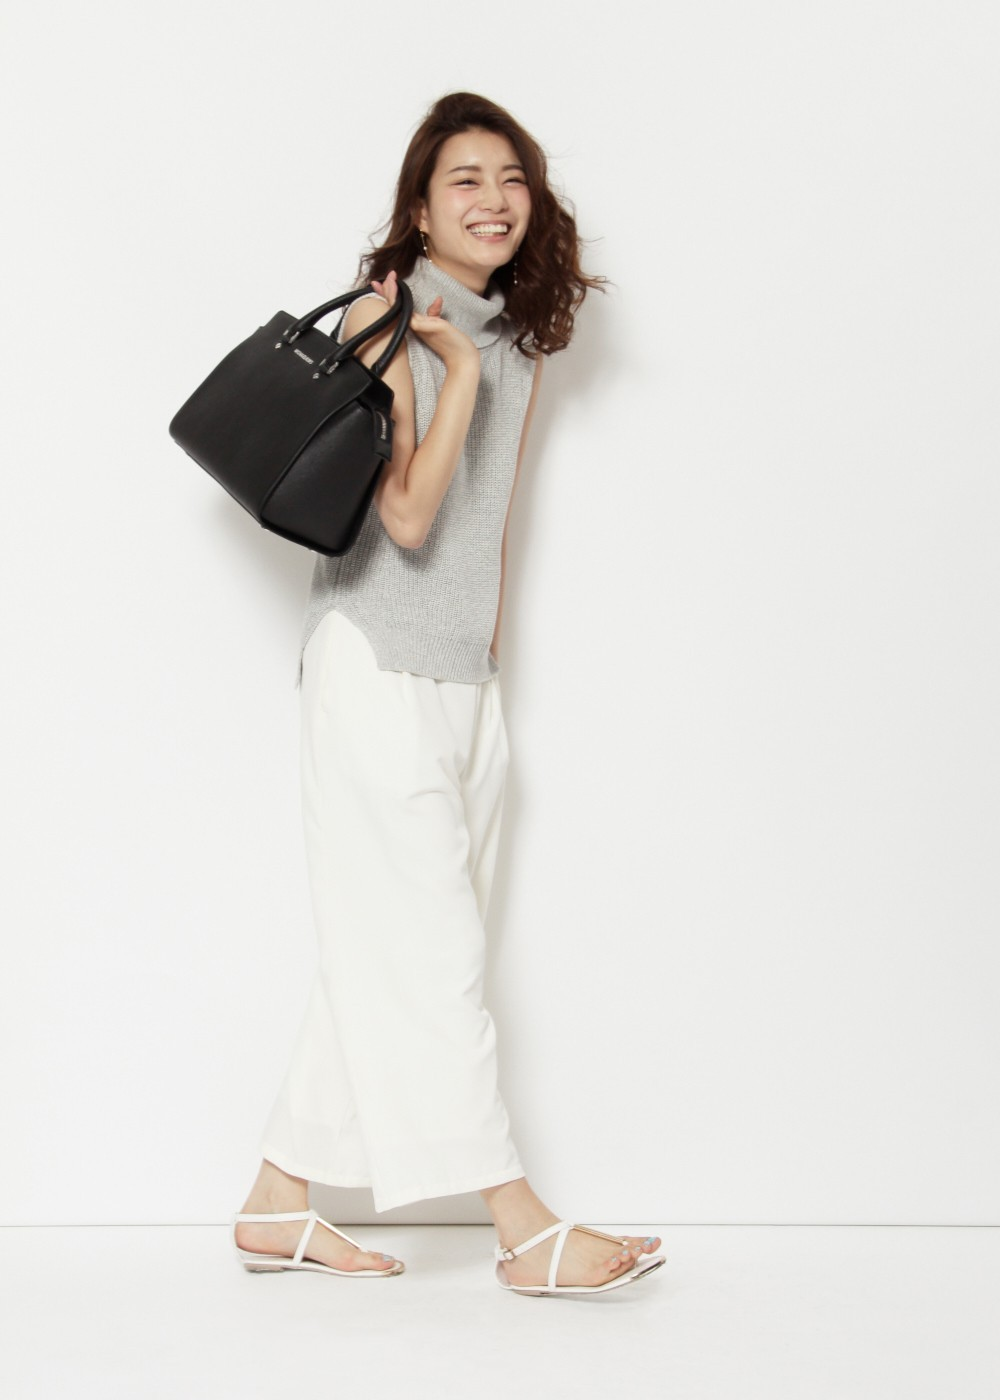 Large Top Zip Satchel|Black|ハンドバッグ|MICHAEL KORS|最大39%OFF